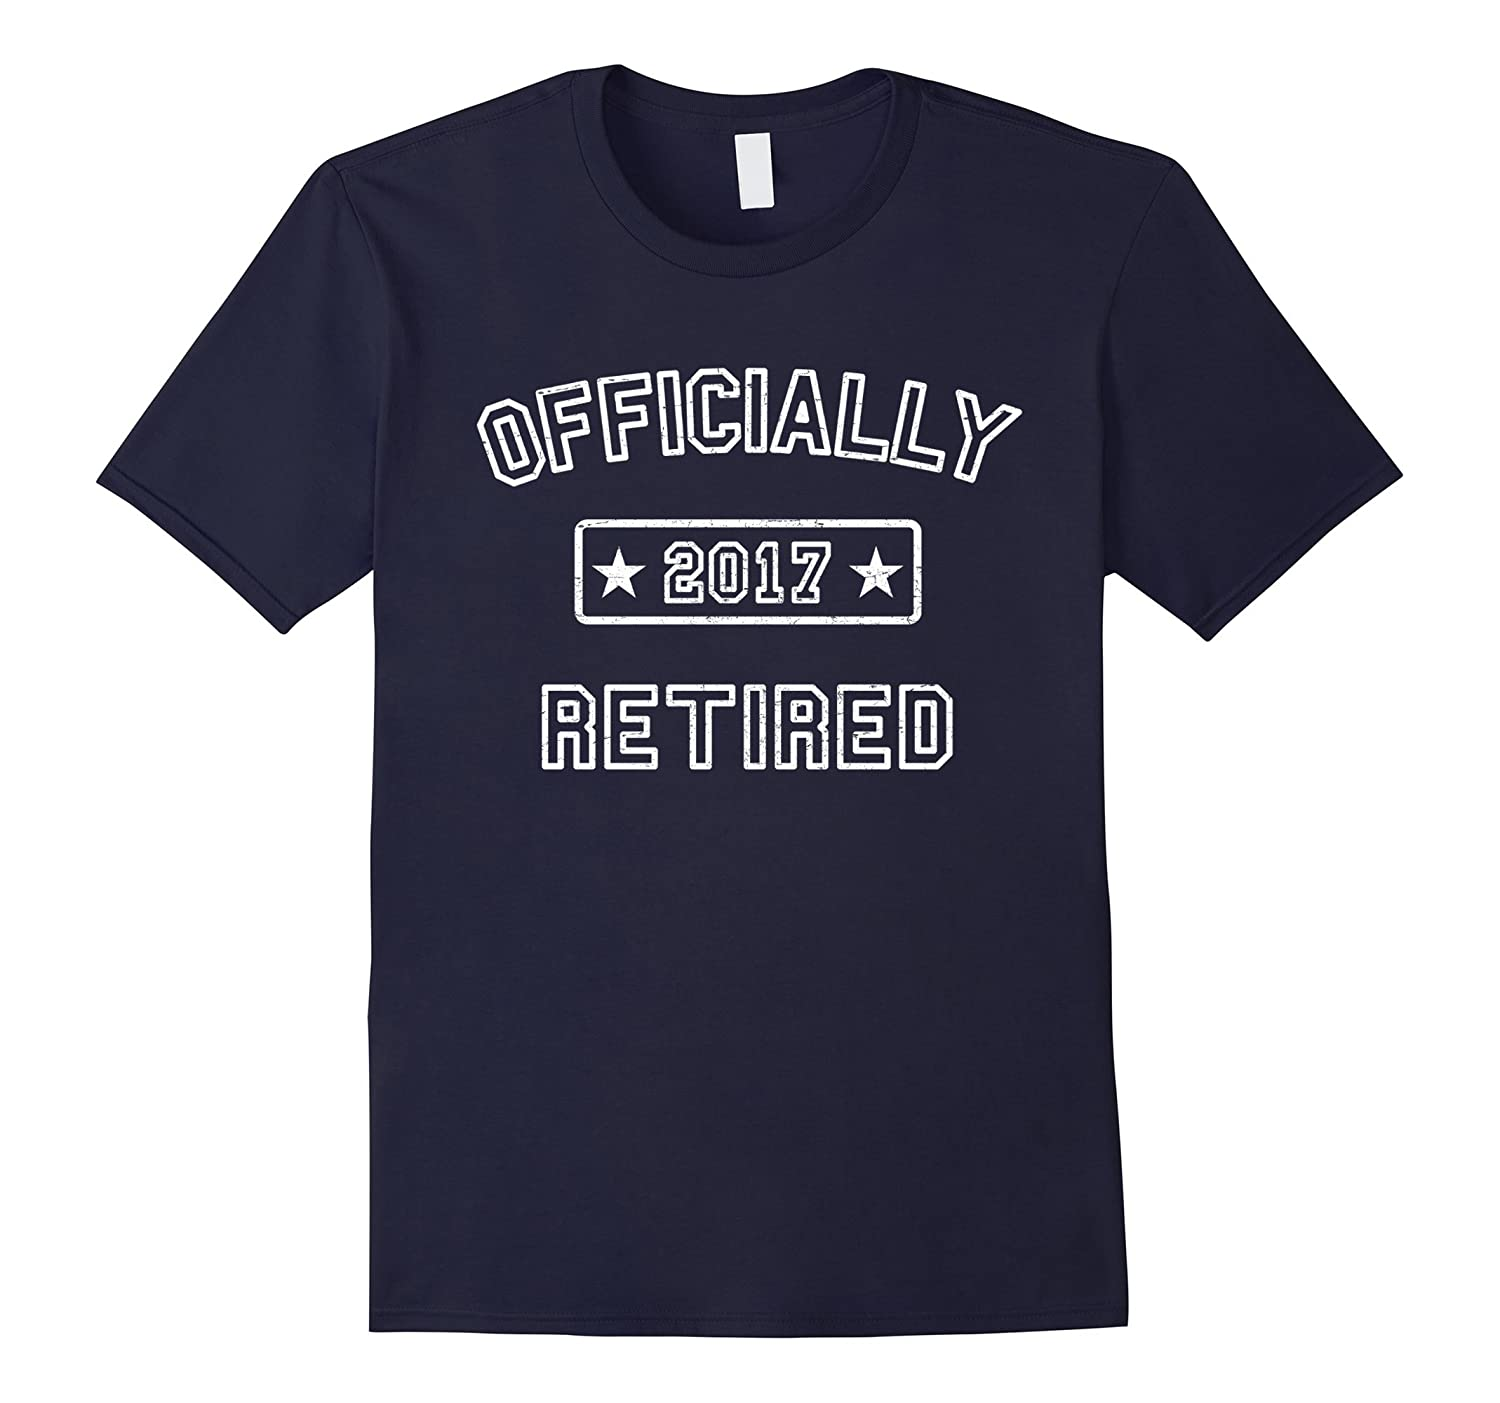 """Officially Retired 2017"" t-shirt for your retiring friend"